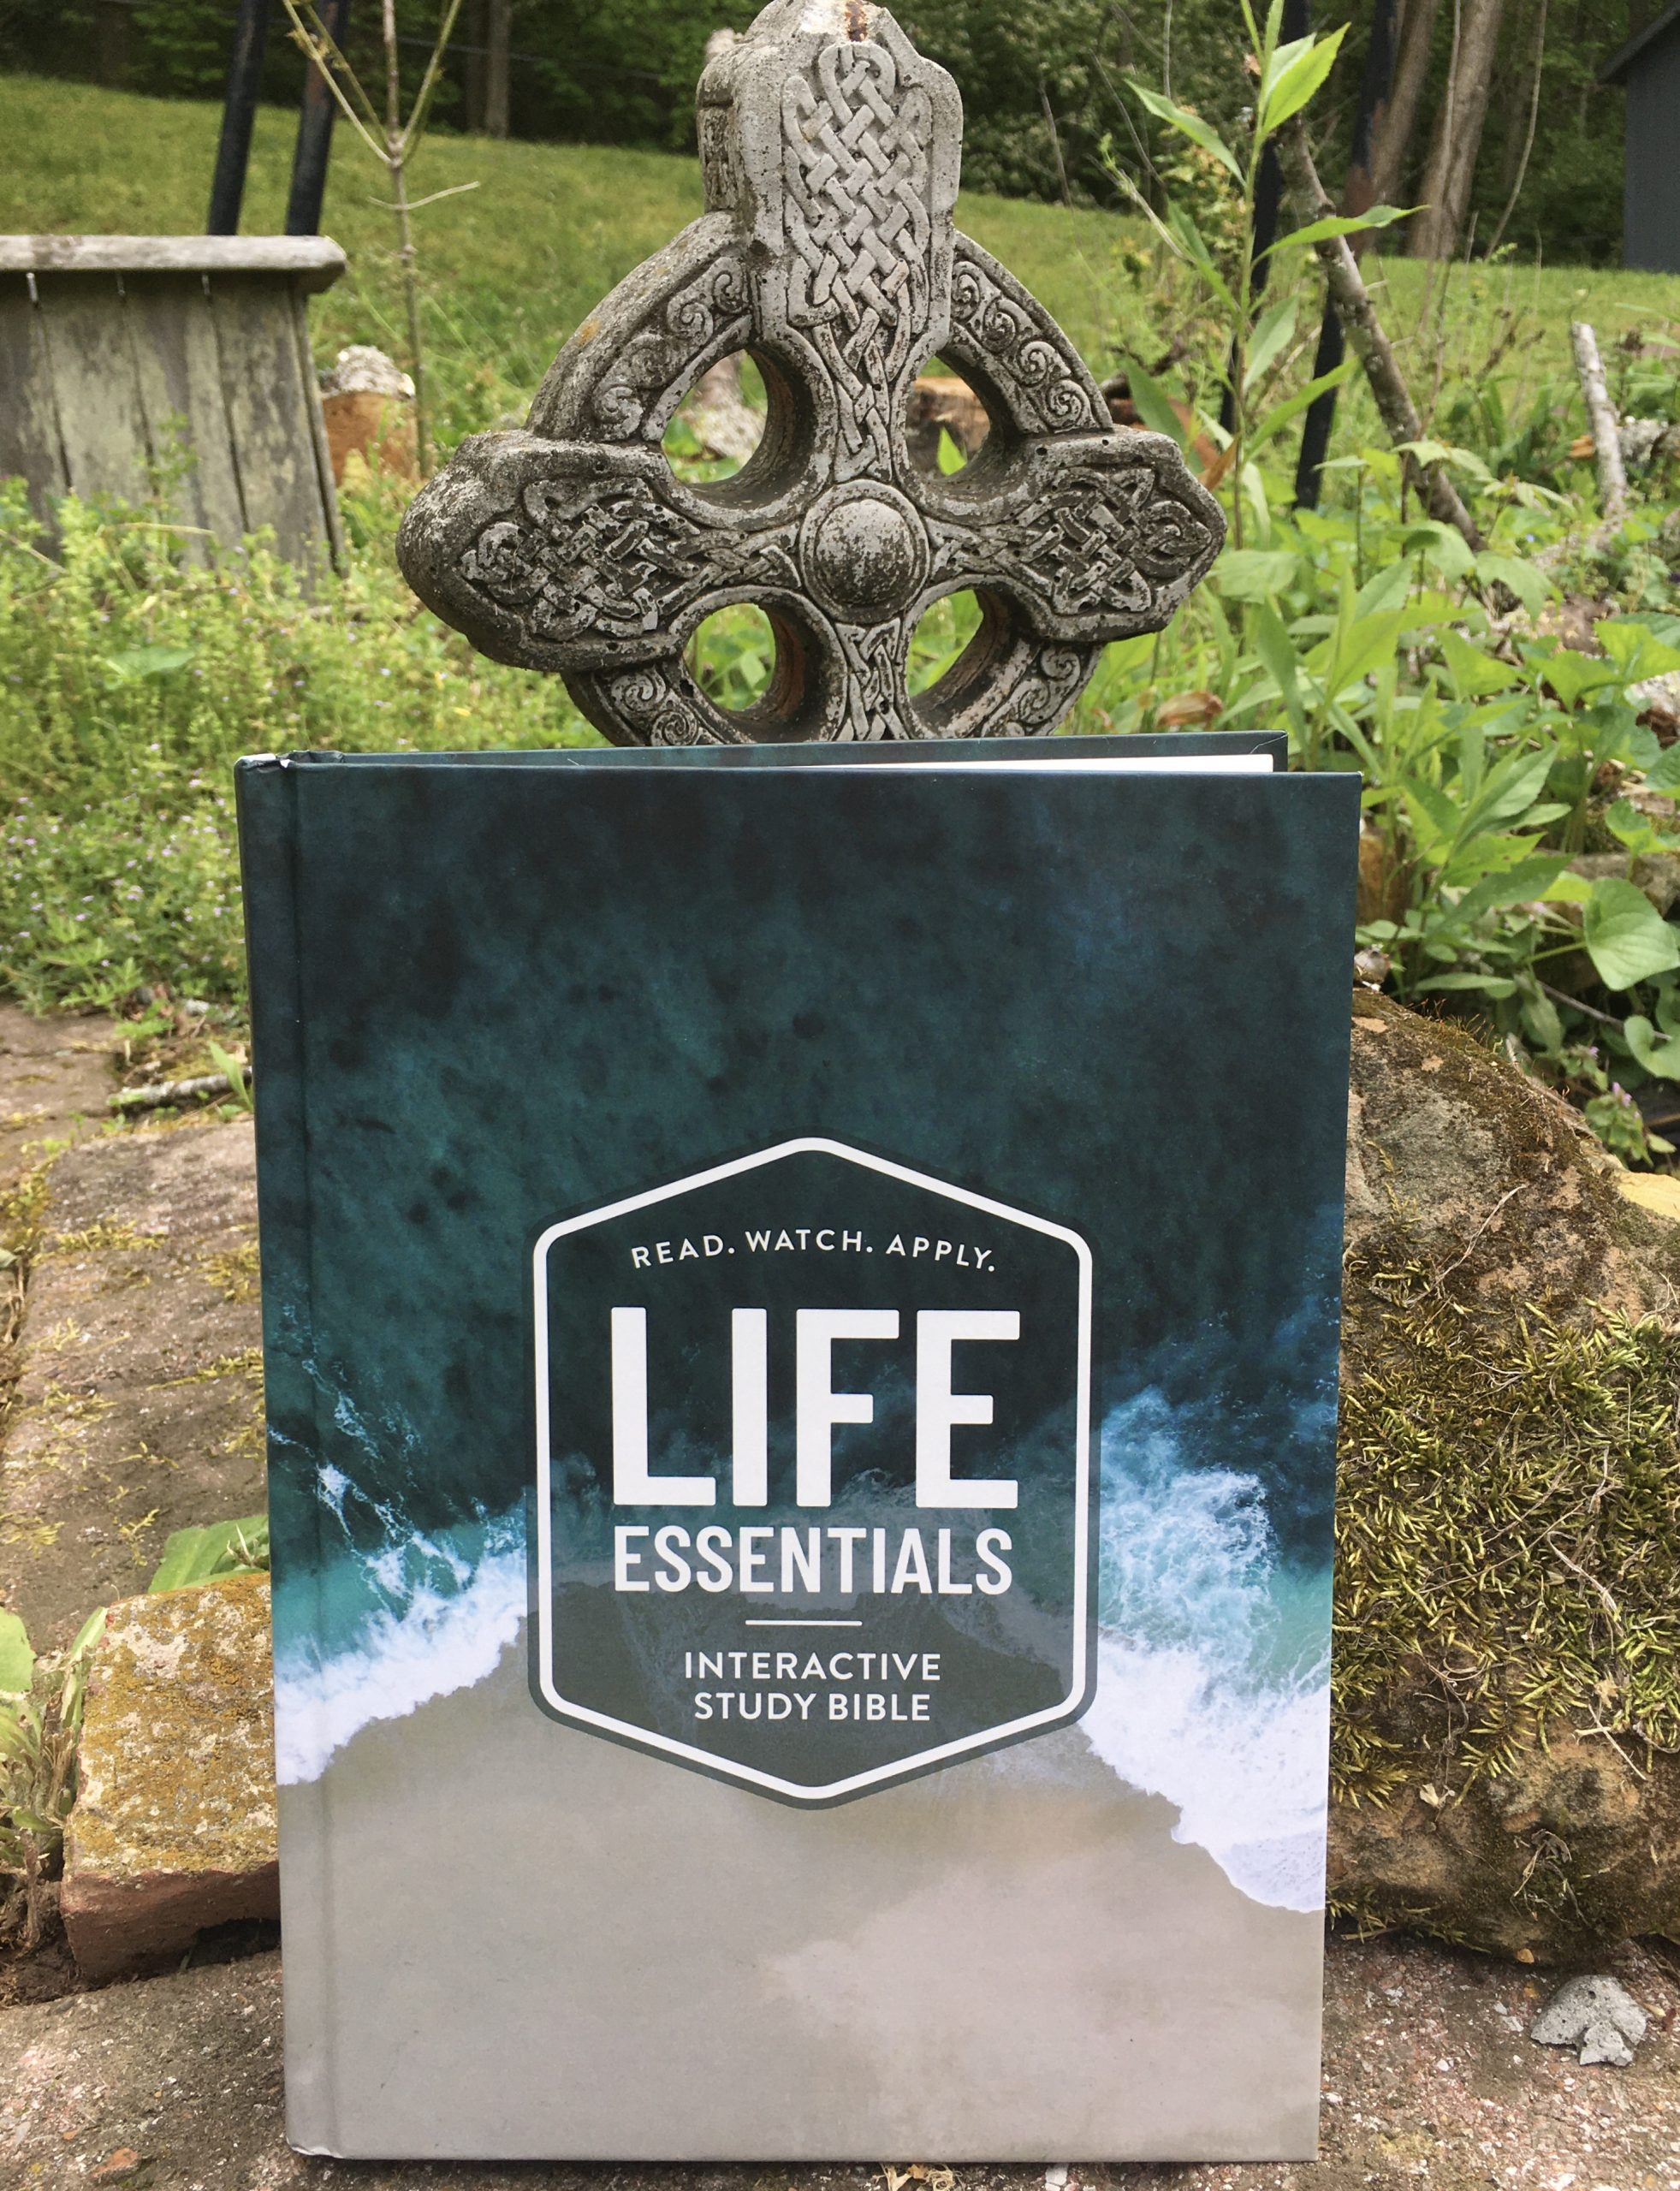 Photo of Life Essentials Interactive Study Bible (c) Kathryn Darden